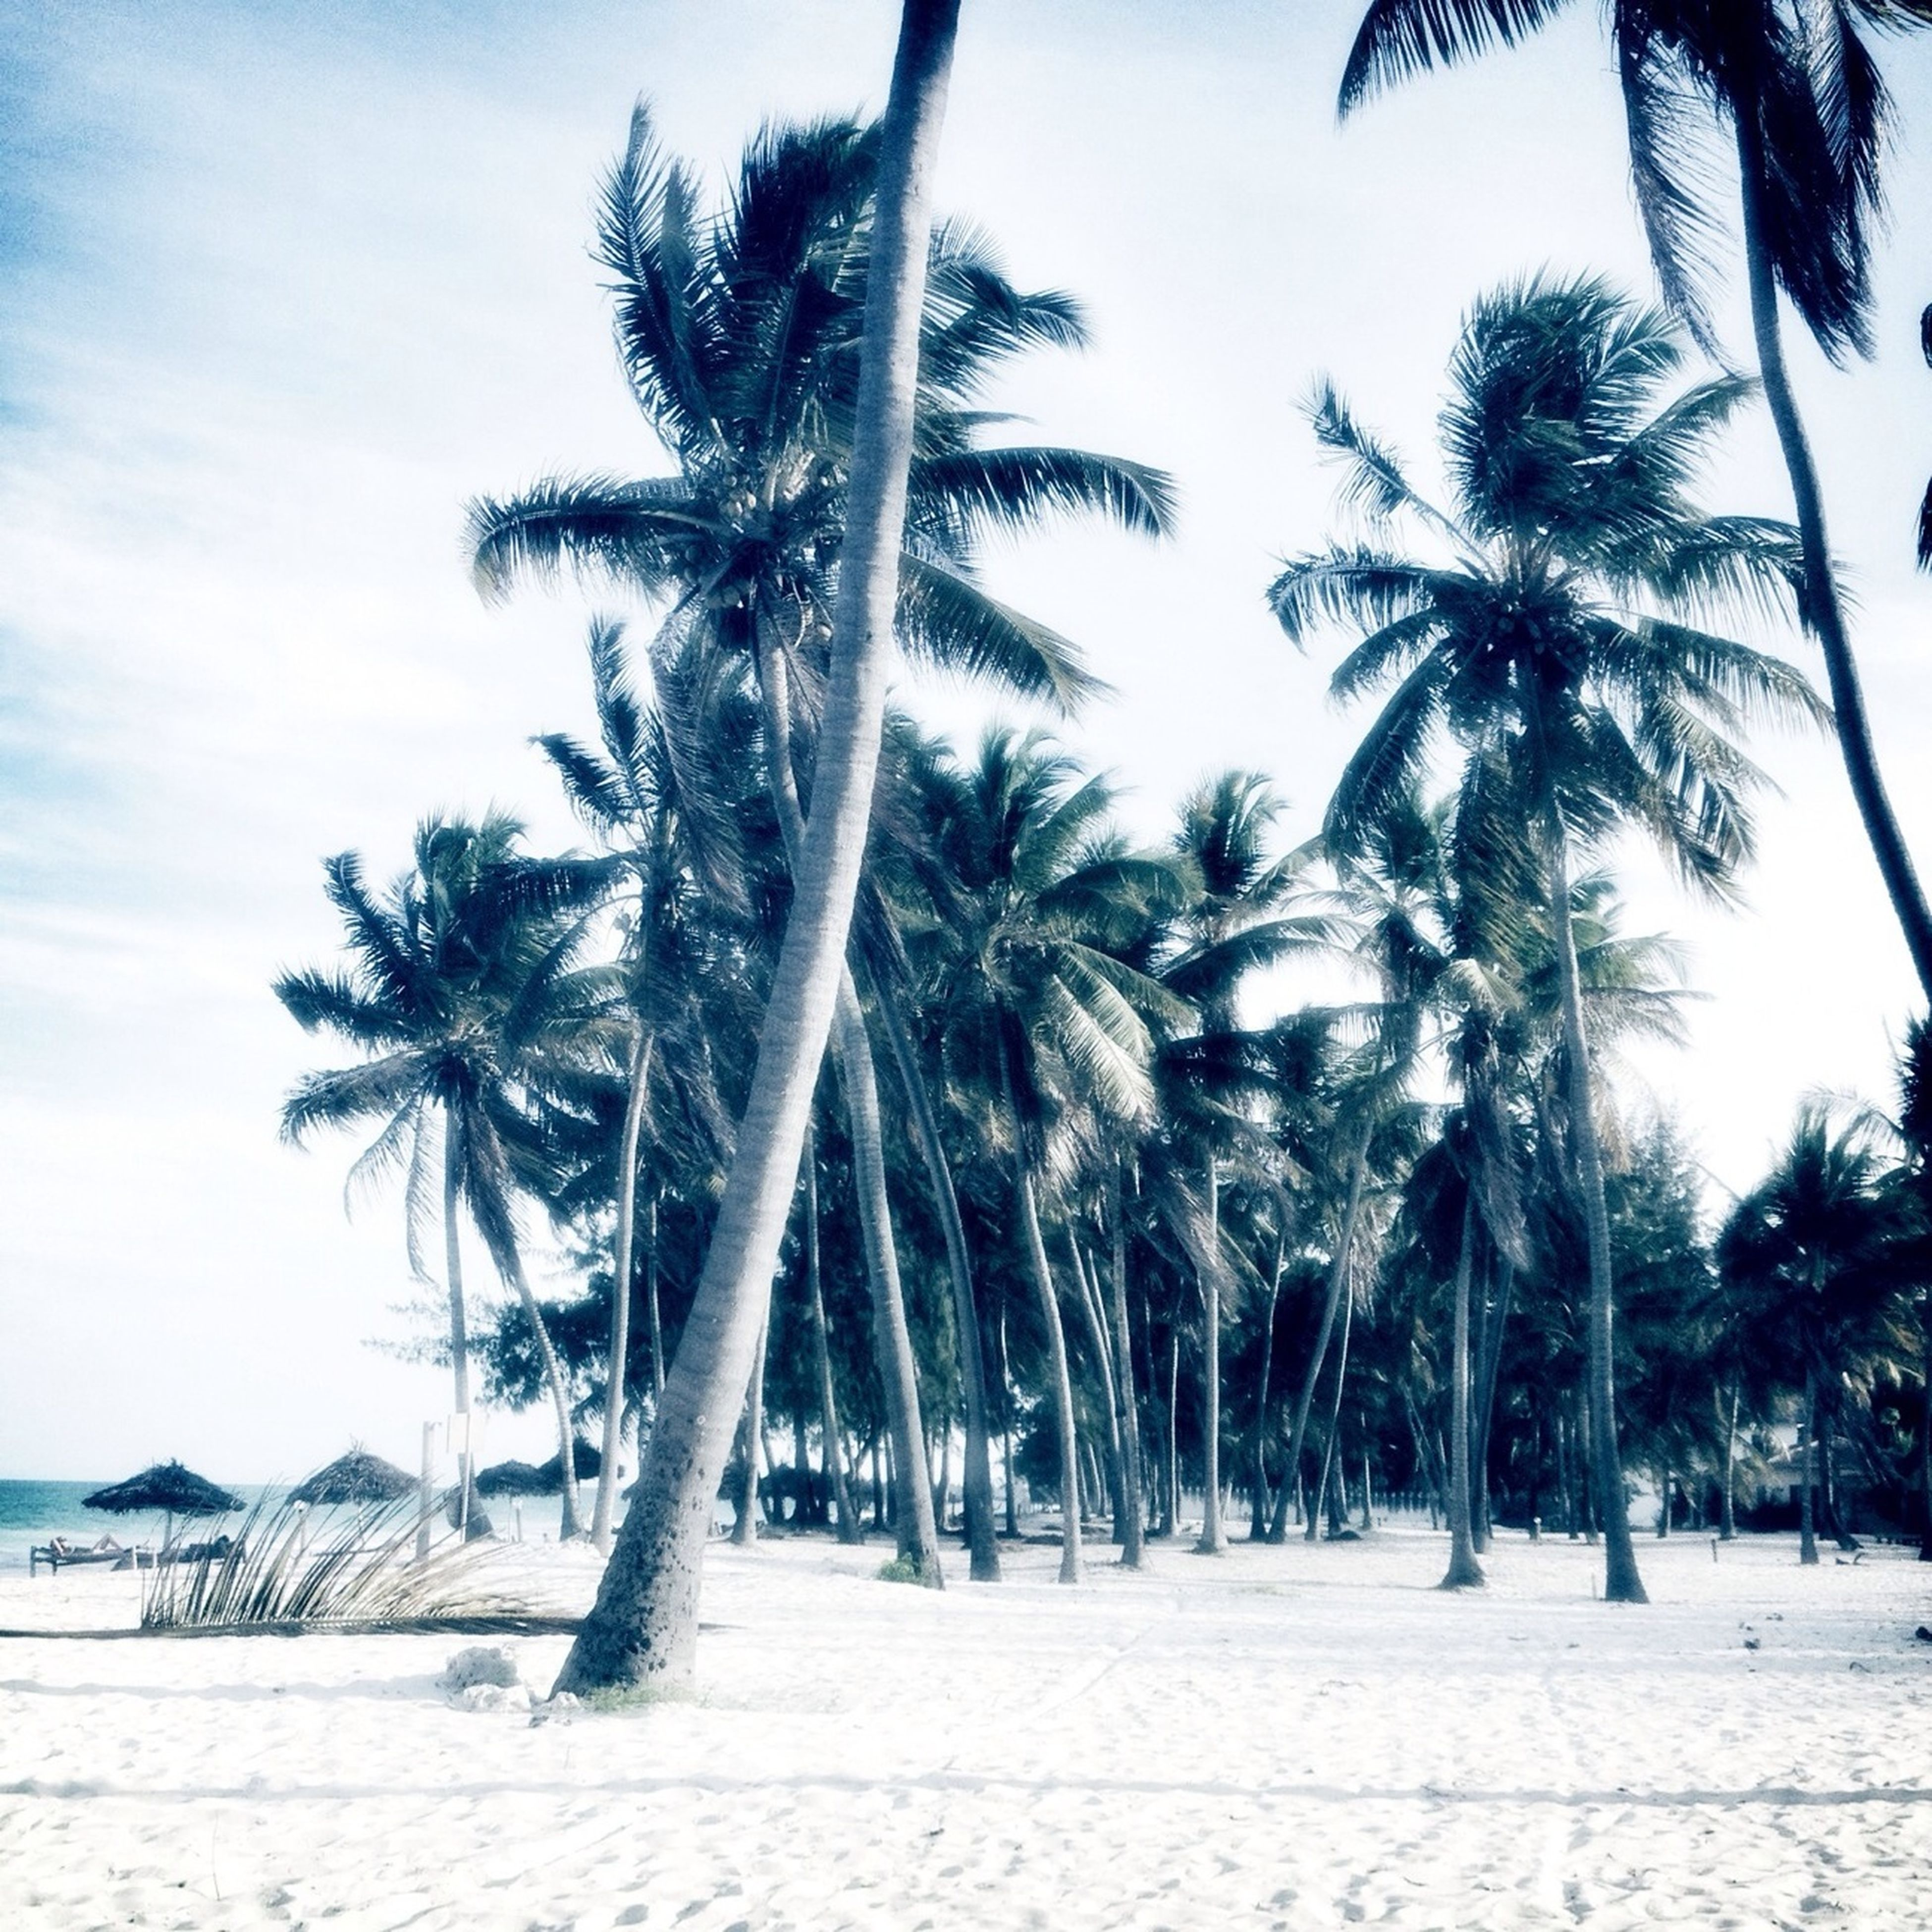 palm tree, tree, tree trunk, tranquility, beach, growth, sky, tranquil scene, coconut palm tree, nature, beauty in nature, scenics, sea, sand, tropical tree, palm leaf, tropical climate, day, tall - high, shore